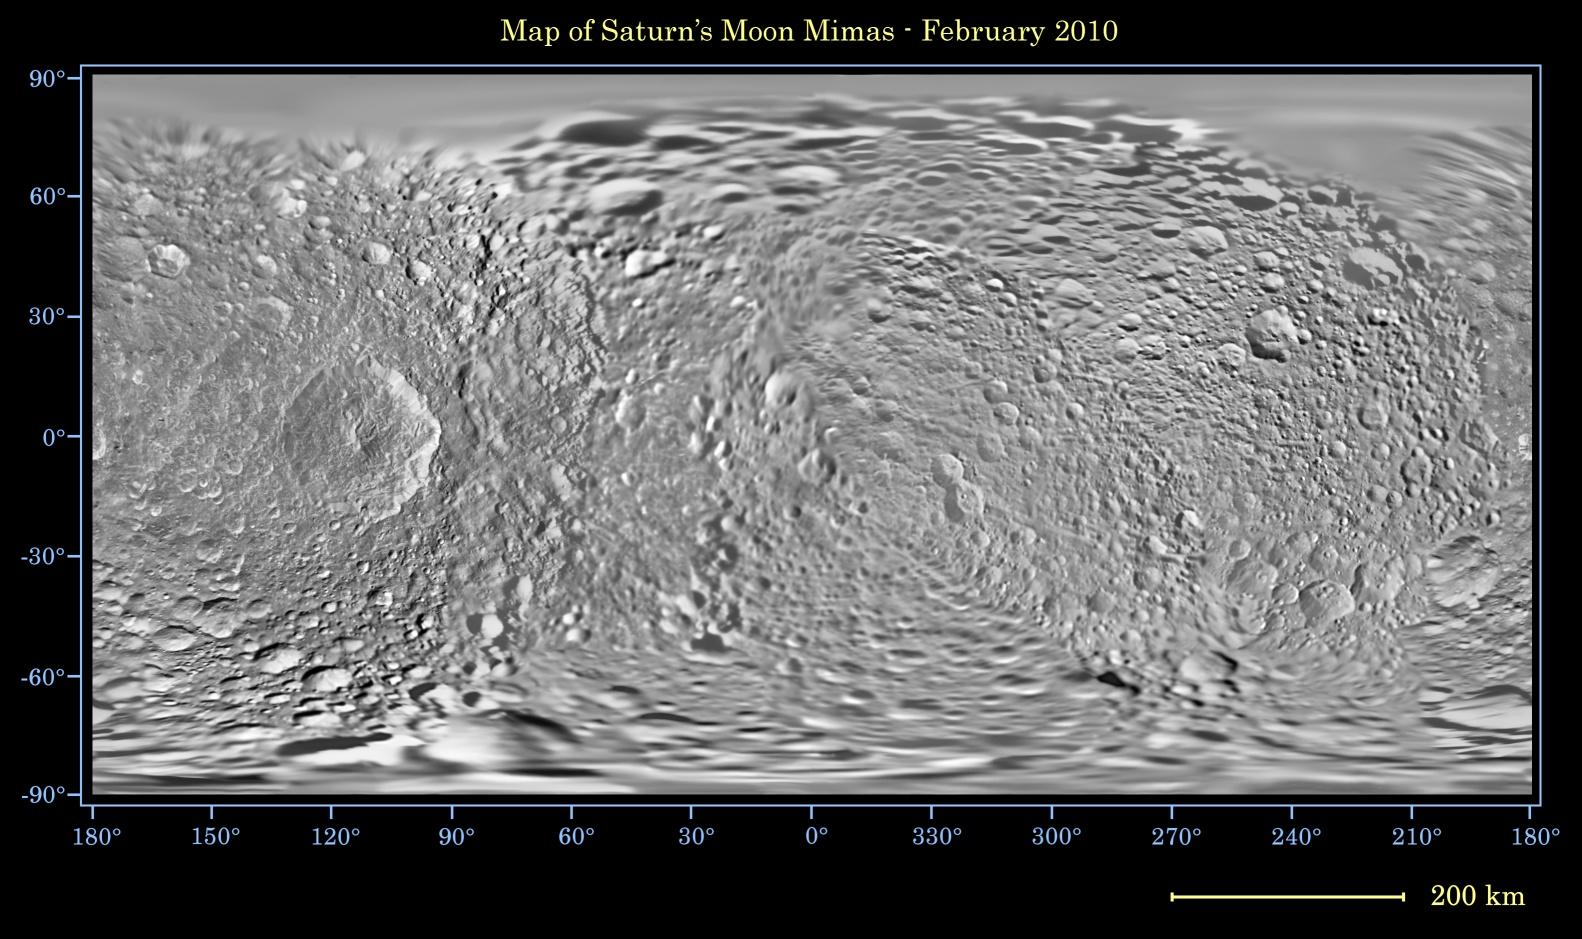 This global map of Saturn's moon Mimas was created using images taken during Cassini spacecraft flybys, with Voyager images filling in the gaps in Cassini's coverage.